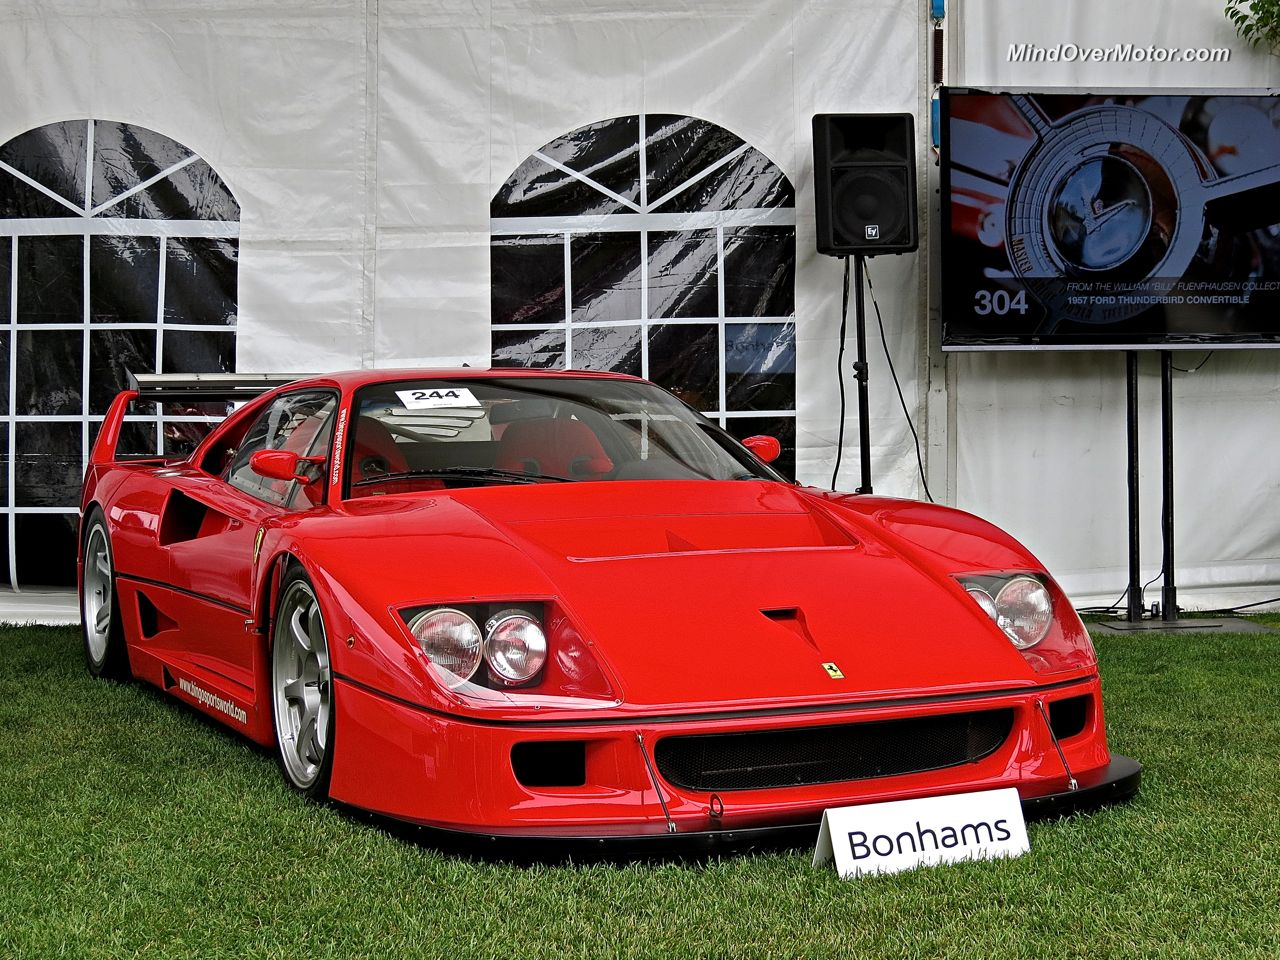 Ferrari F40 LM at Bonhams Auction Pebble Beach